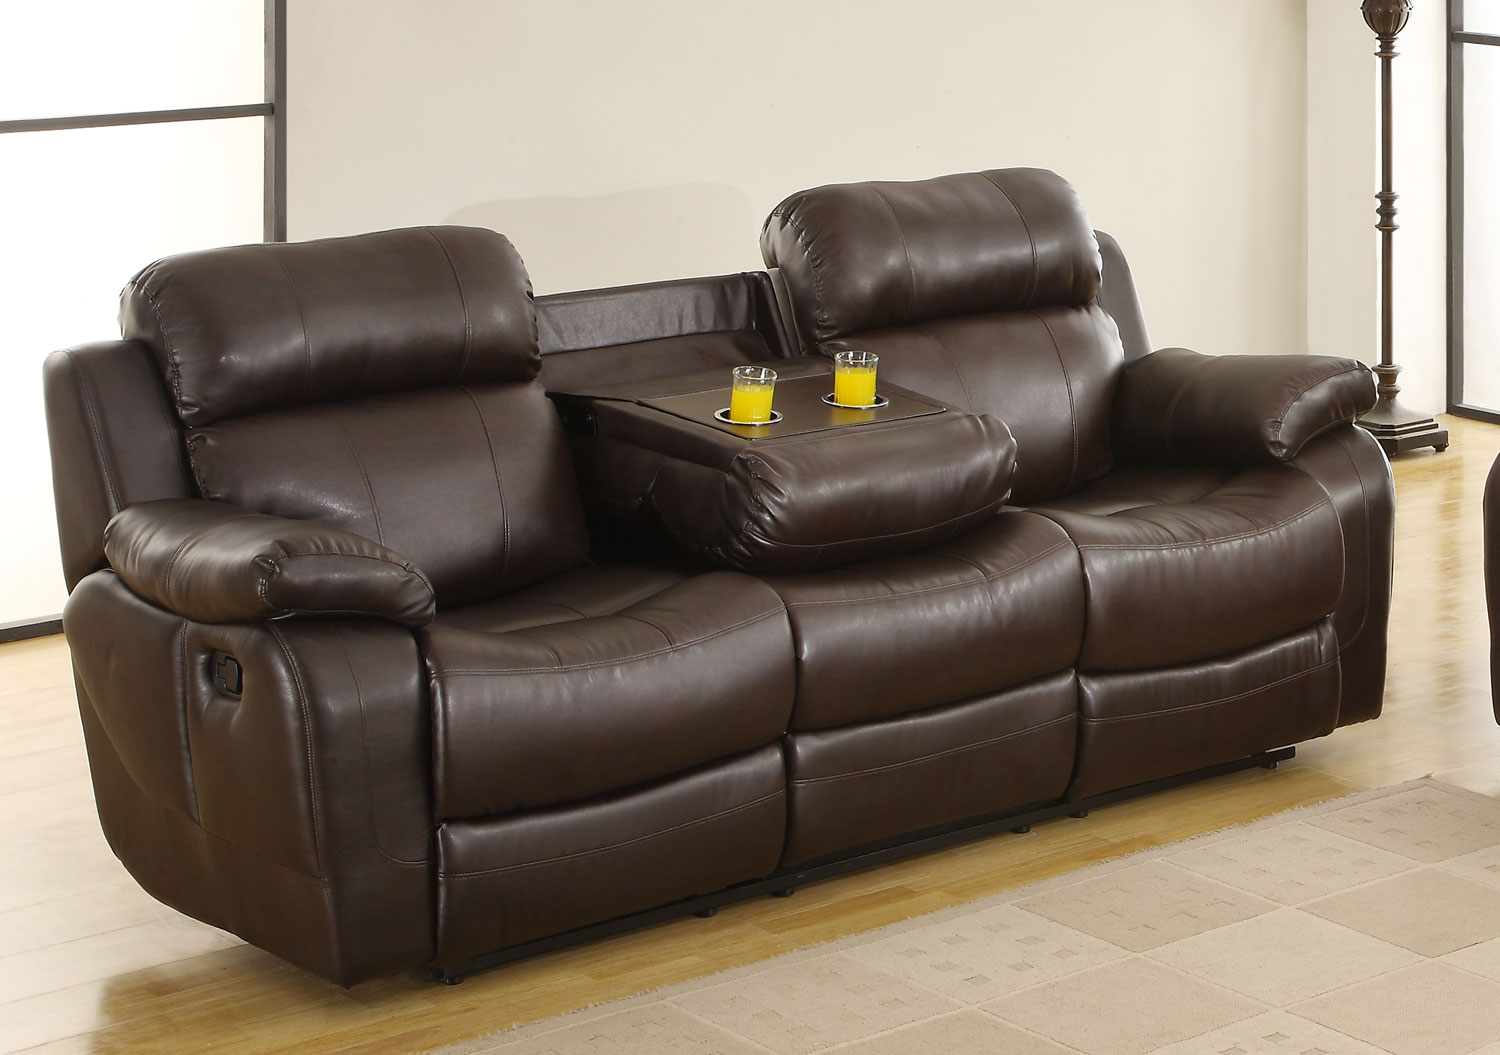 Homelegance Marille Sofa Recliner with Drop Cup Holder - Dark Brown -  Bonded Leather Match